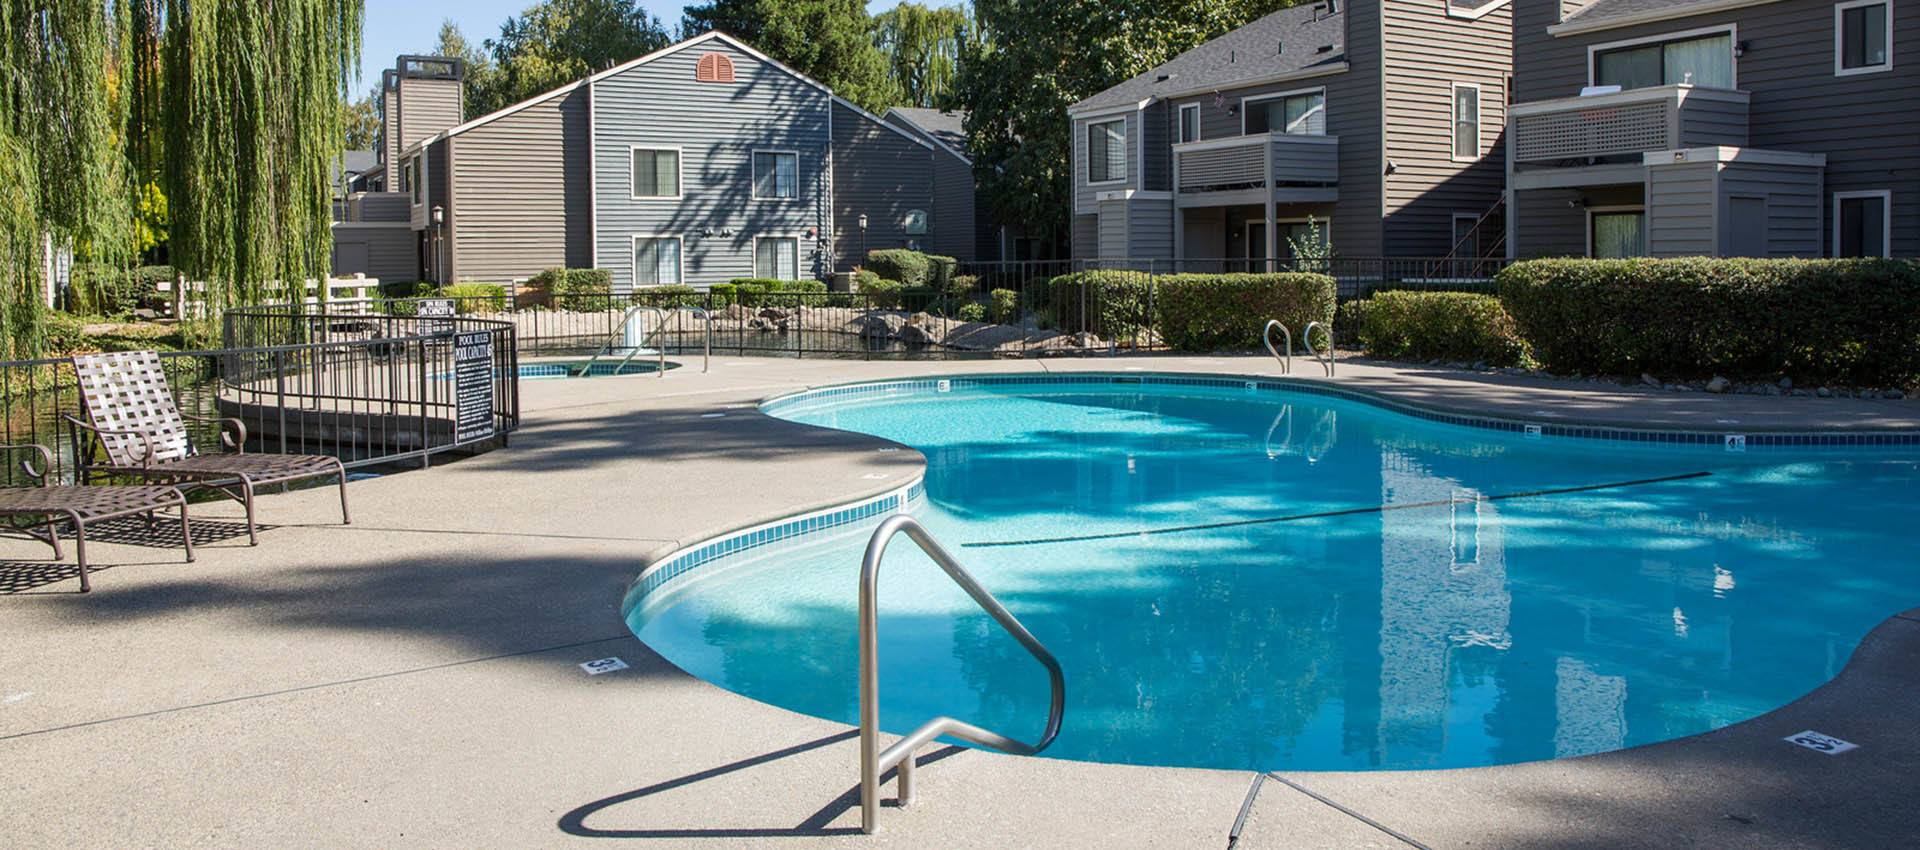 Enjoy Our Sparkling Swiming Pool at Hidden Lake Condominium Rentals in Sacramento, California